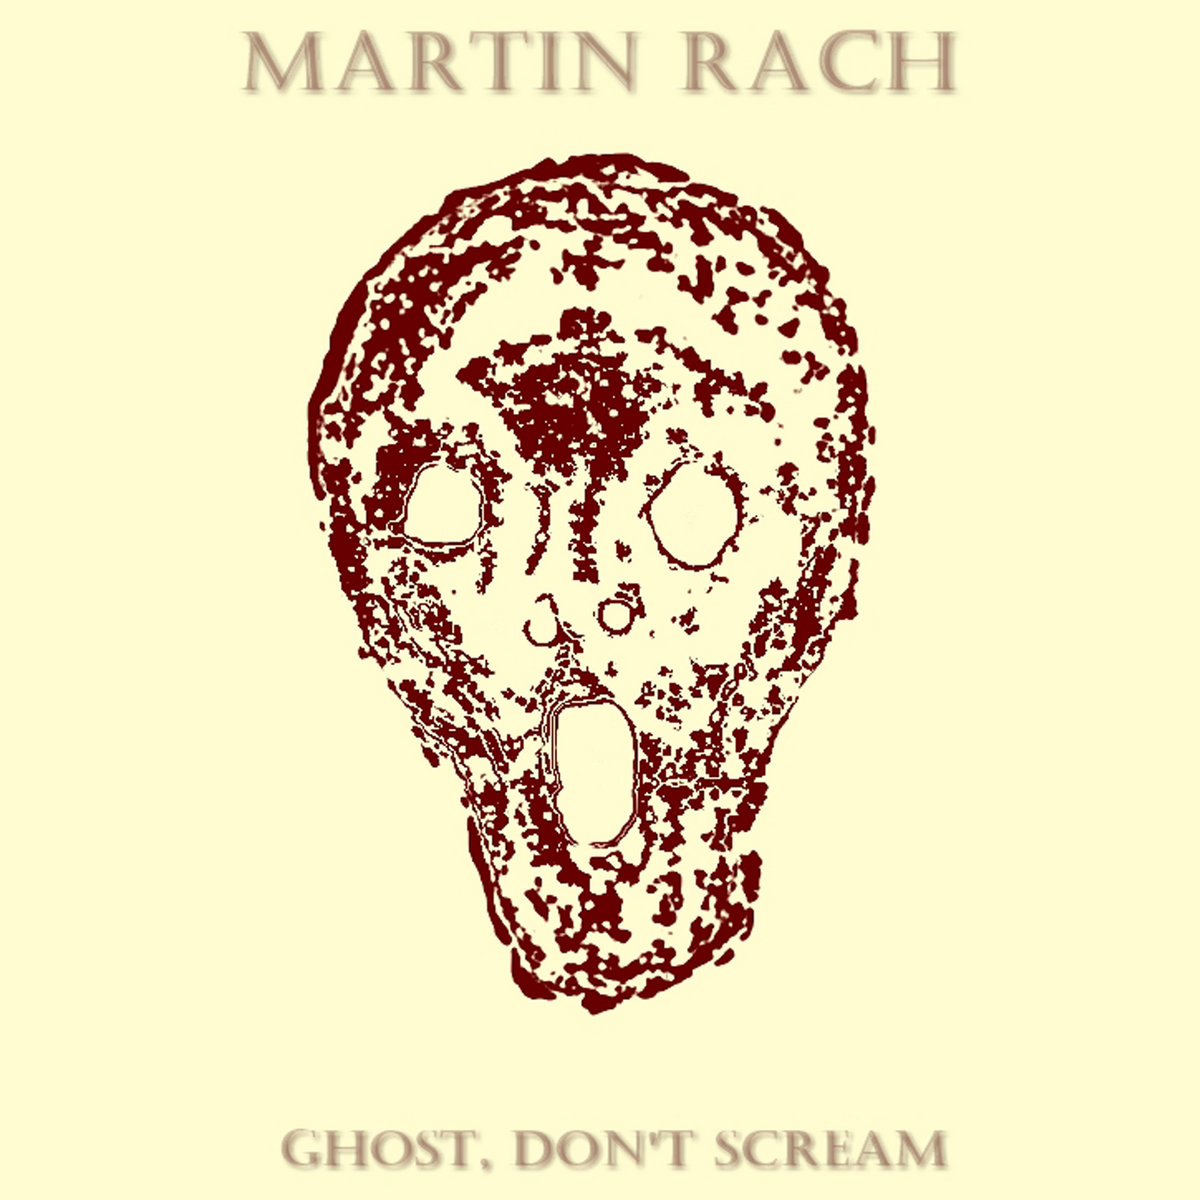 MARTIN RACH – ghost, don't scream